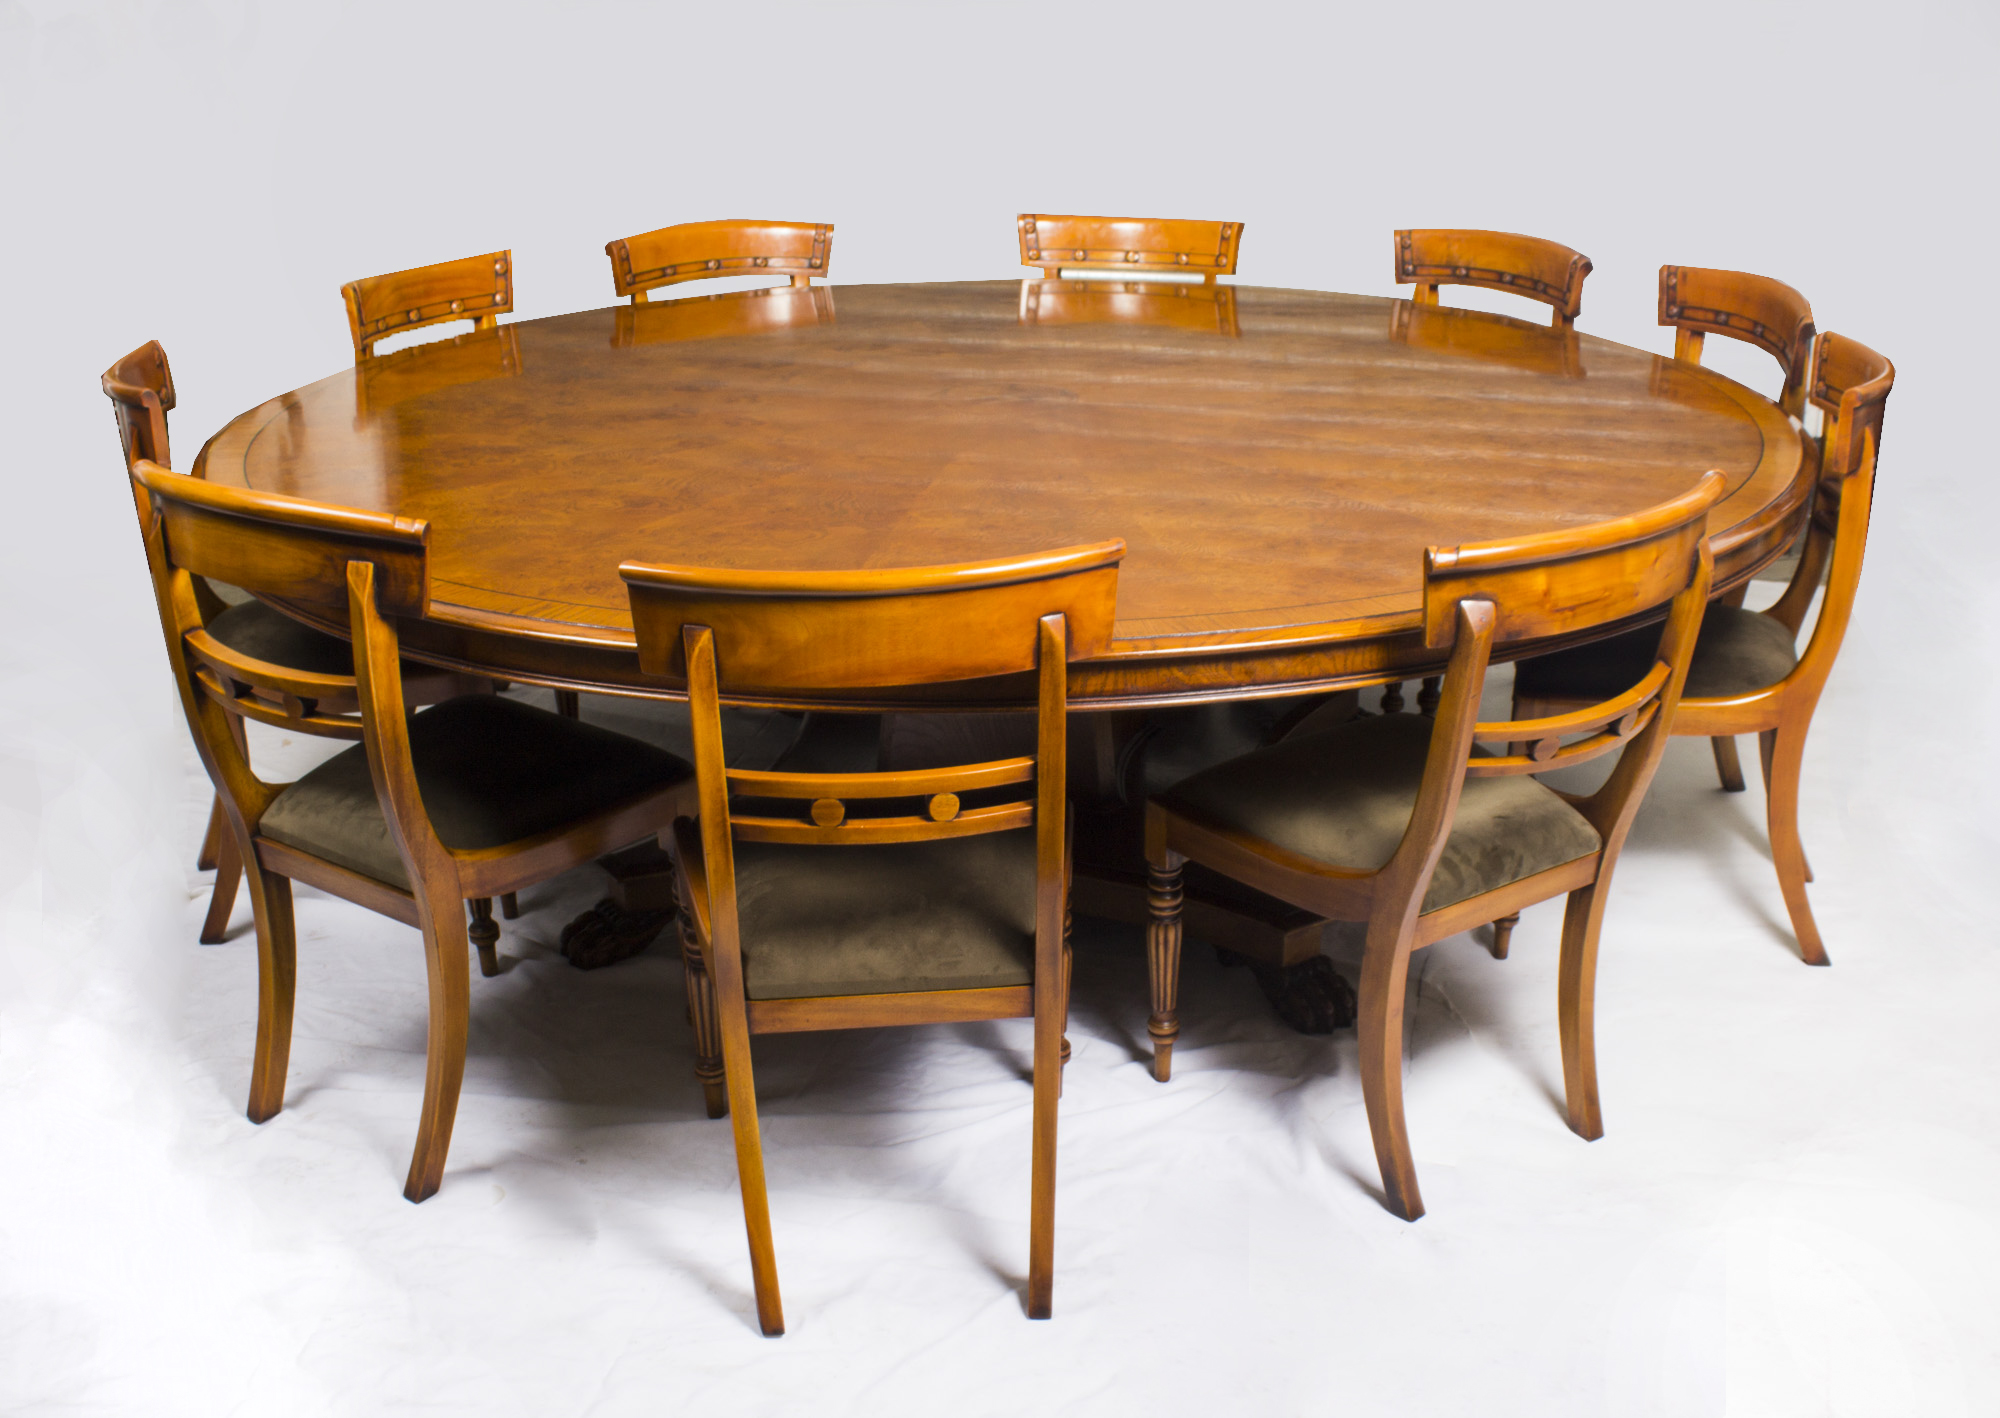 large round oak dining table 8 chairs big lots desk chair vintage set 8ft diam pollard and 10